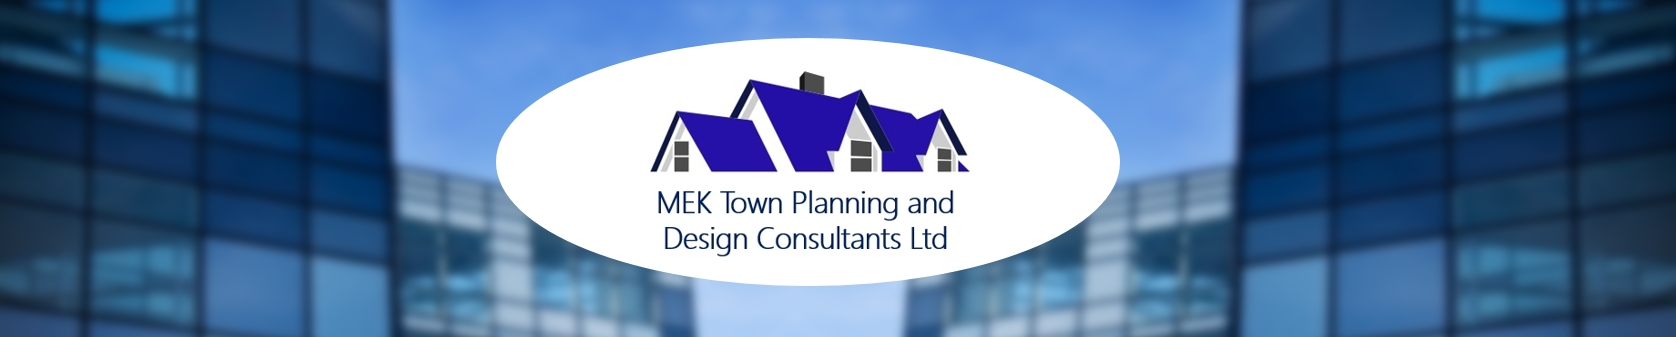 MEK Town Planning and Design Consultants Ltd